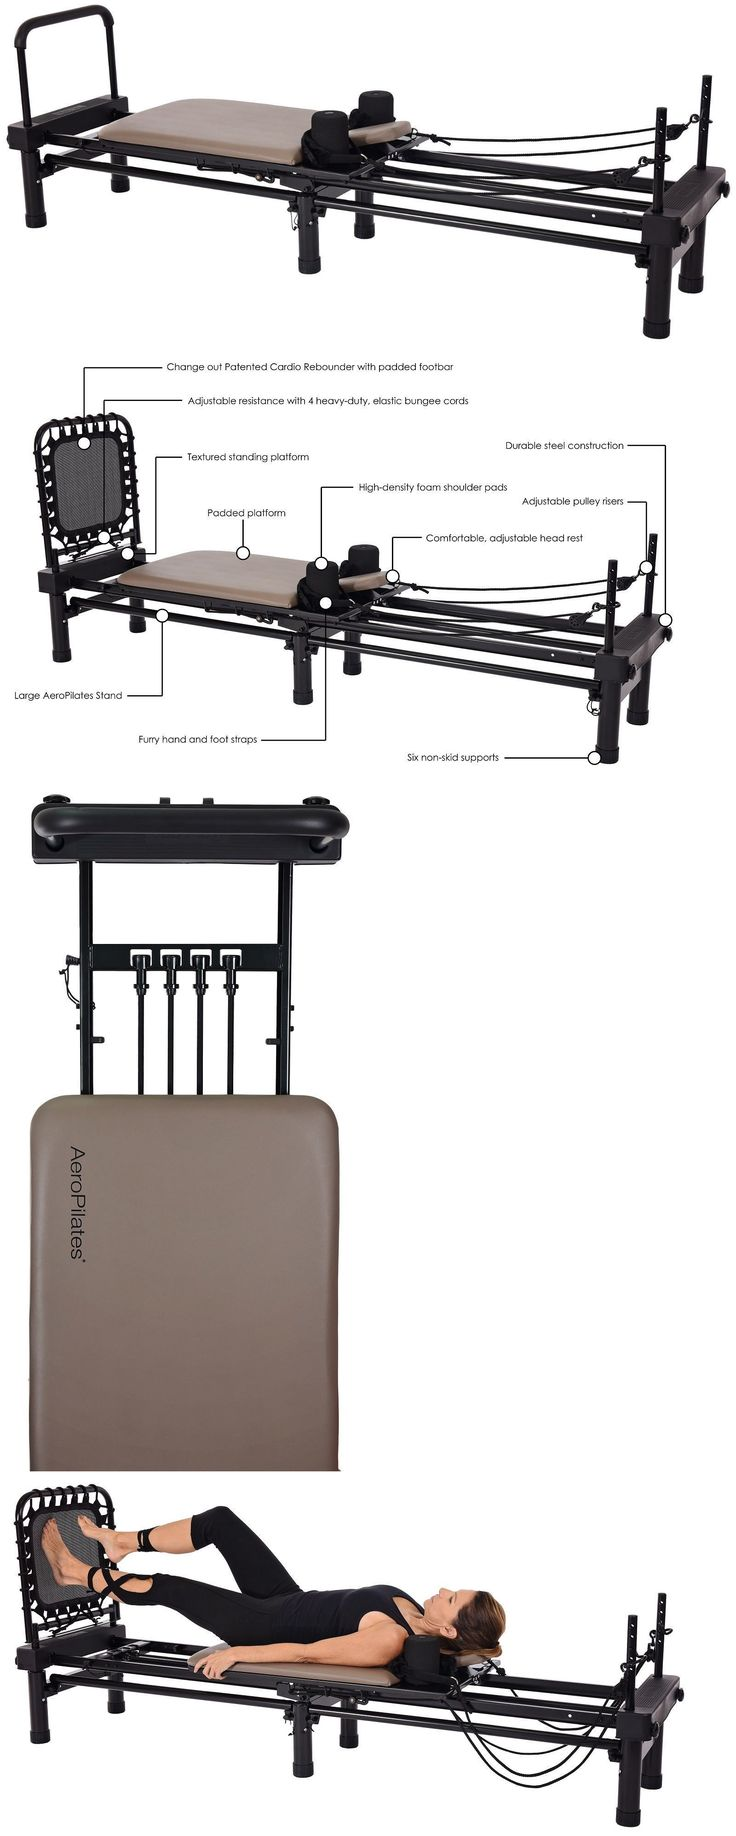 Pilates Tables 179807: Stamina Aeropilates Reformer 651 Pilates Exercise With Stand And Cardio Rebounder -> BUY IT NOW ONLY: $479 on eBay!